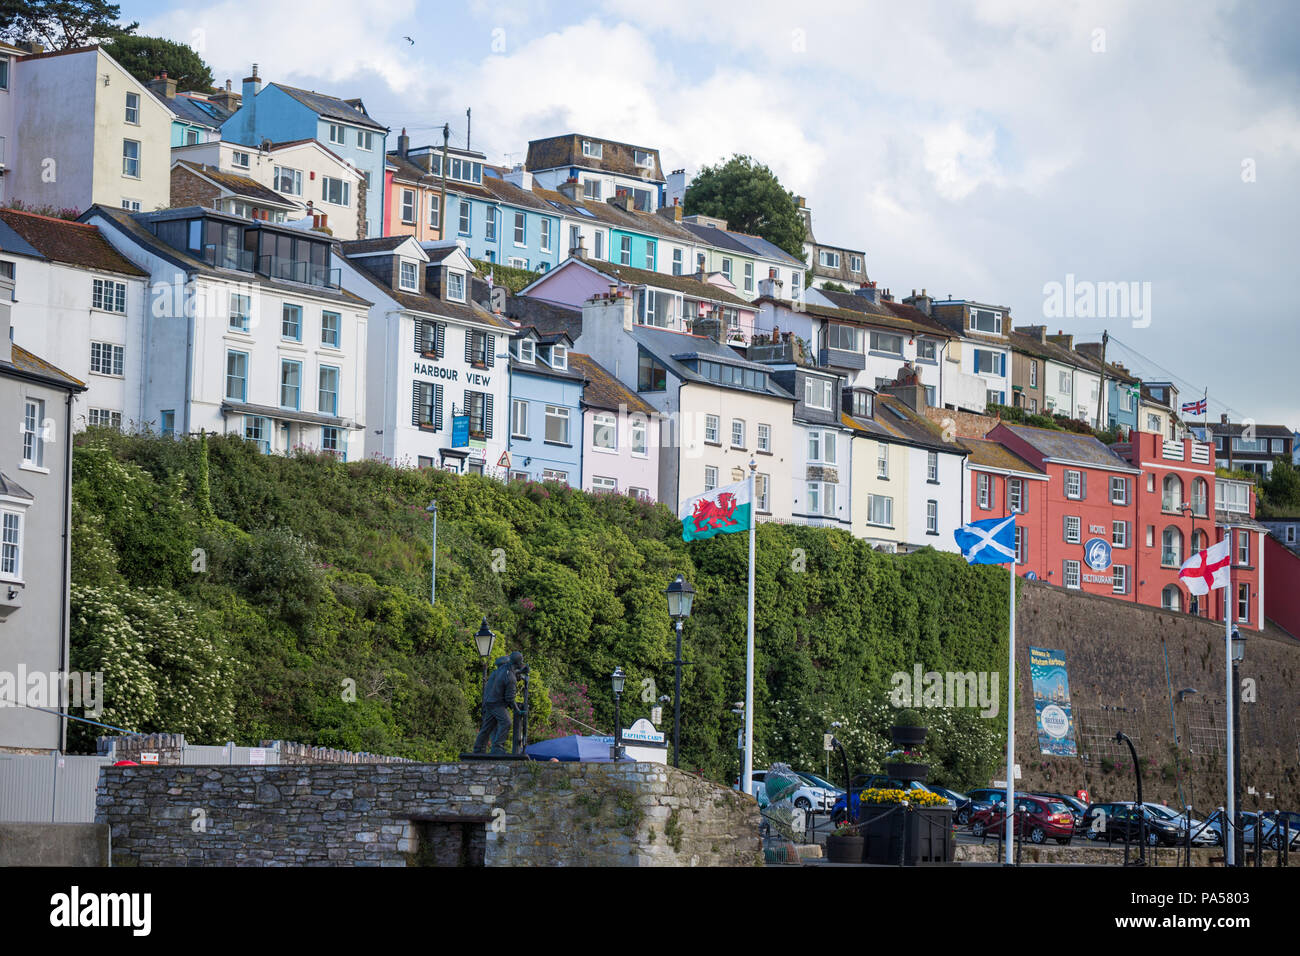 Colourful seaside home / houses with UK flags, Brixham, Devon - Stock Image